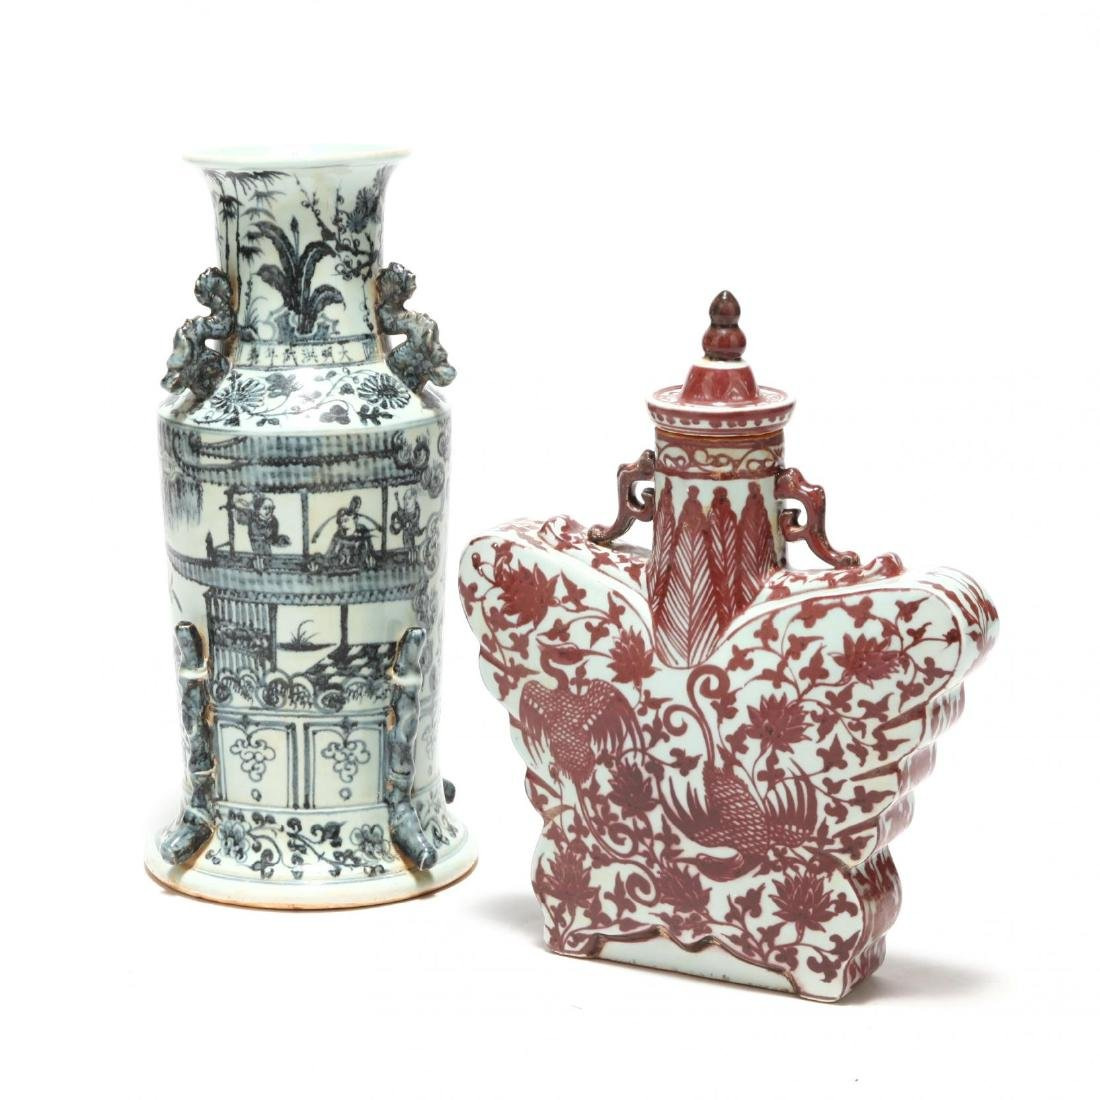 Two Decorative Chinese Urns - 3